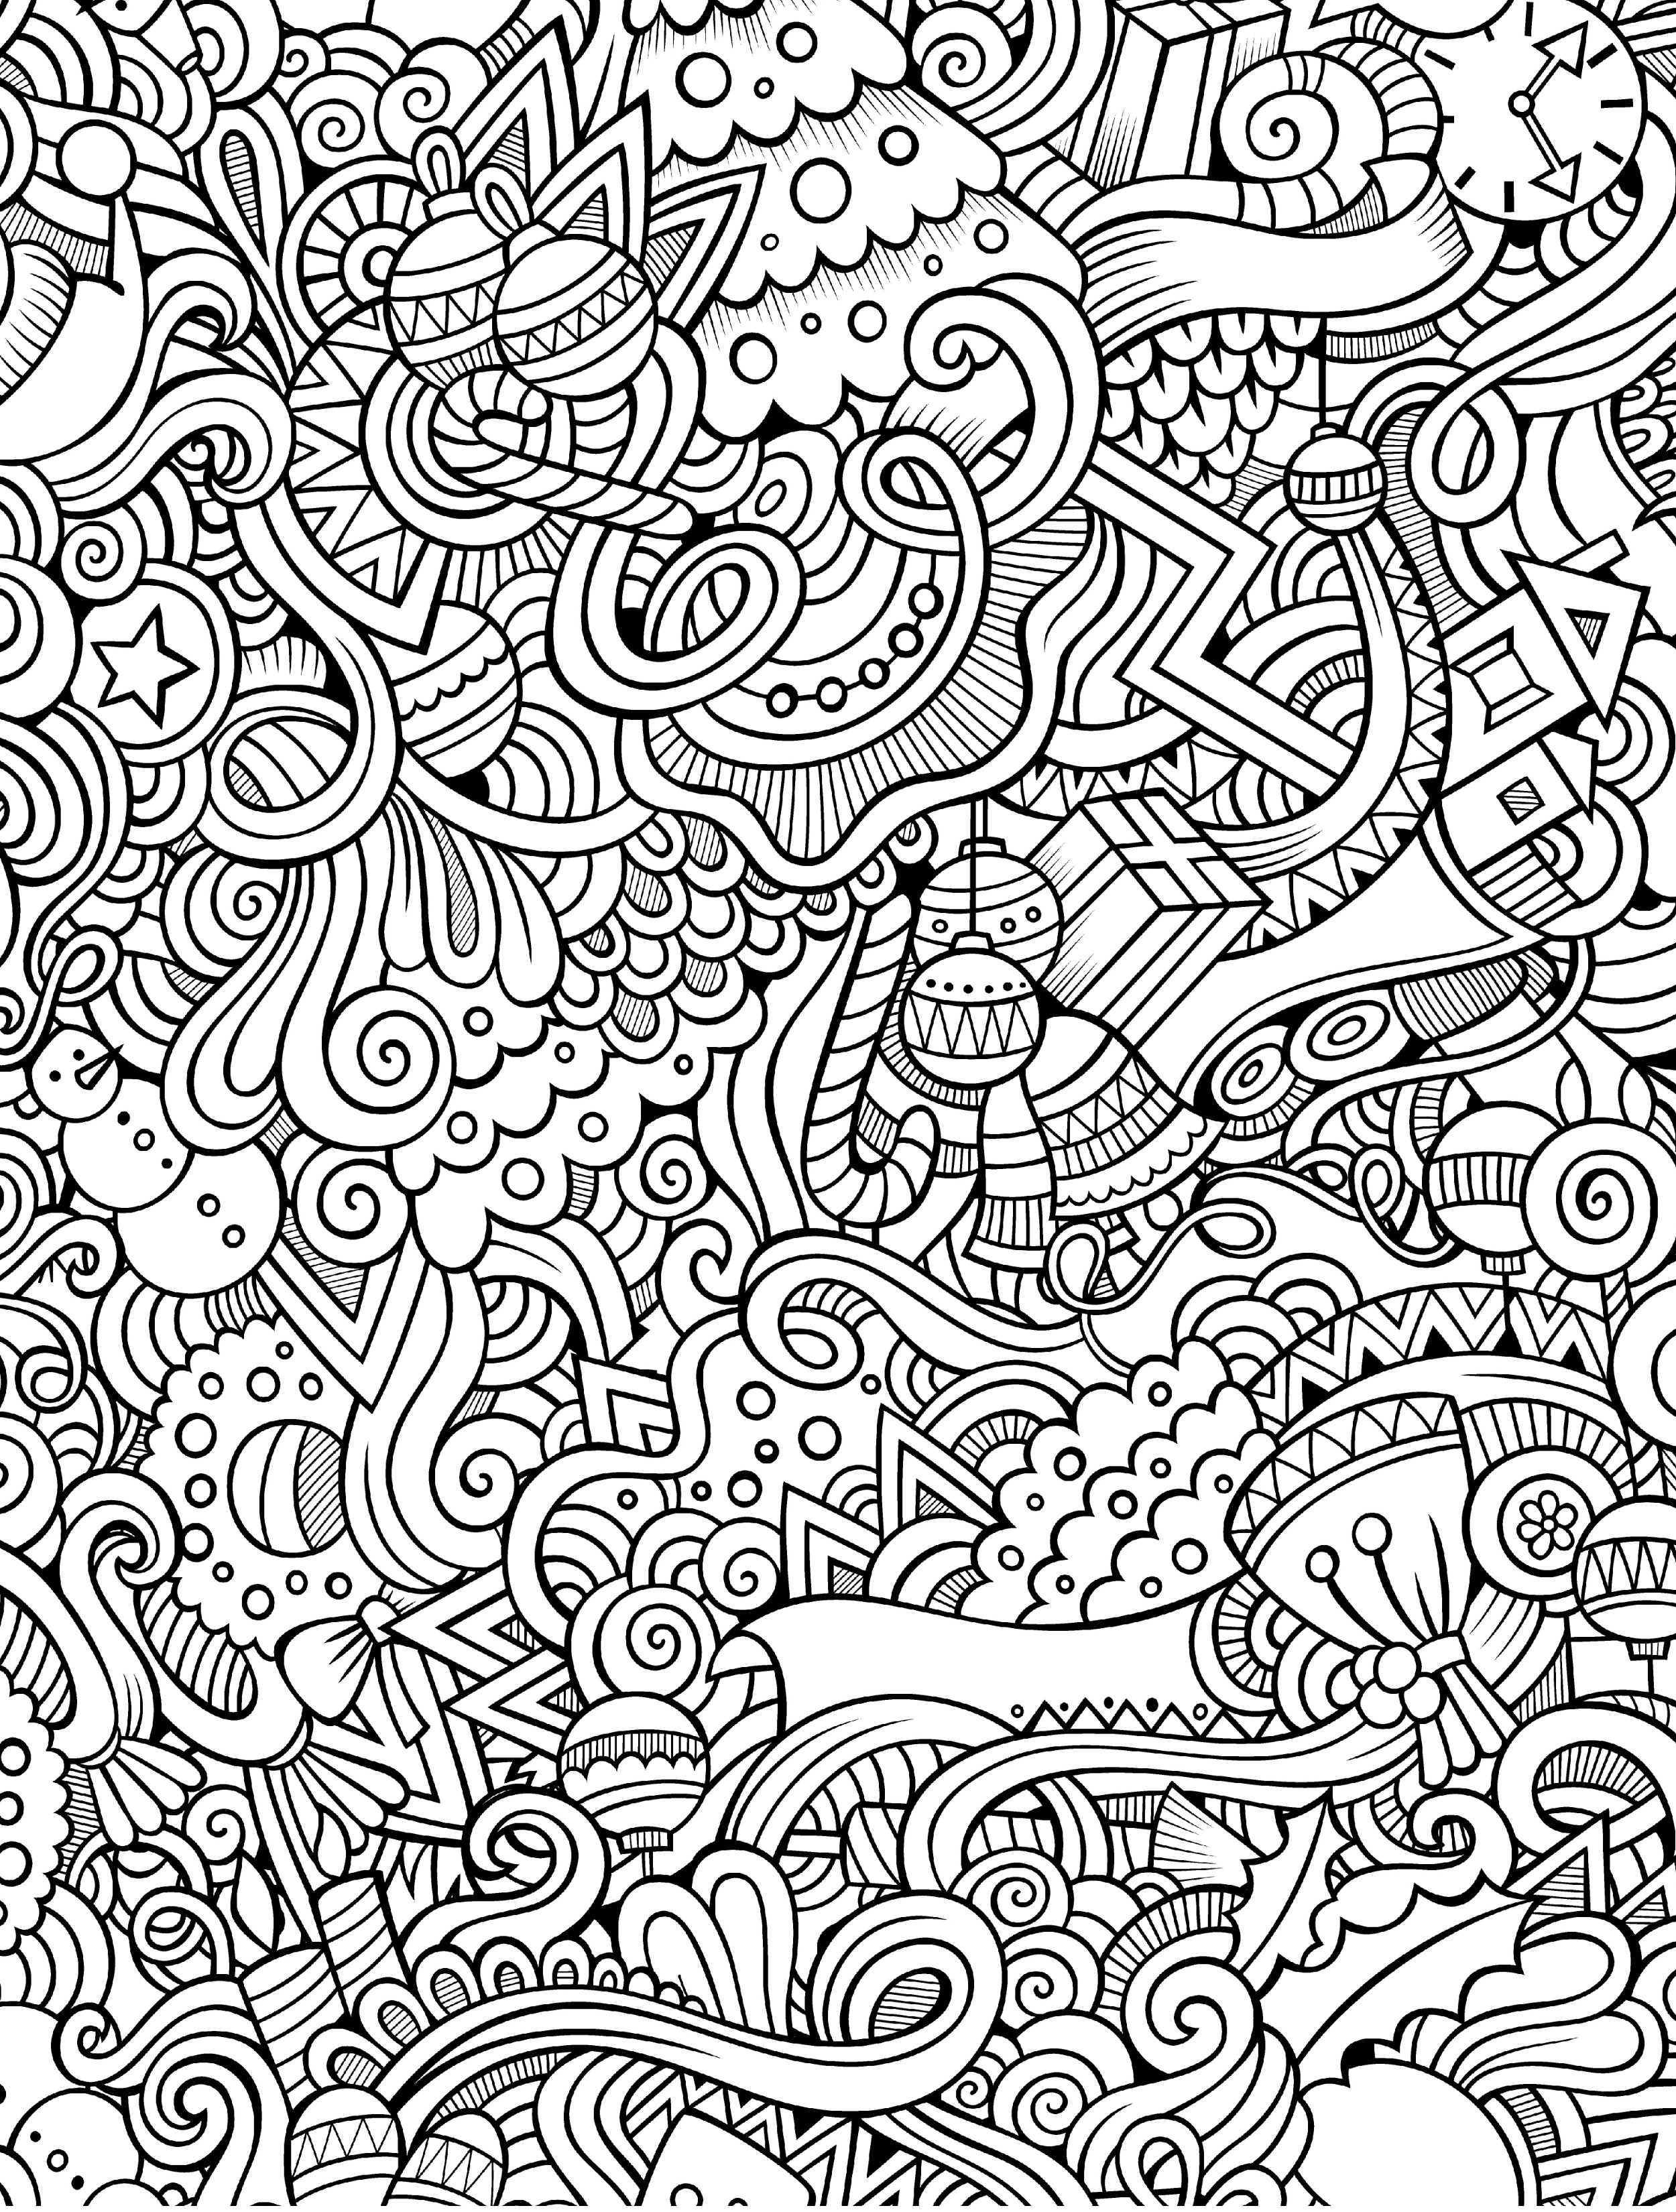 10 Free Printable Holiday Adult Coloring Pages - Free Printable Coloring Pages For March